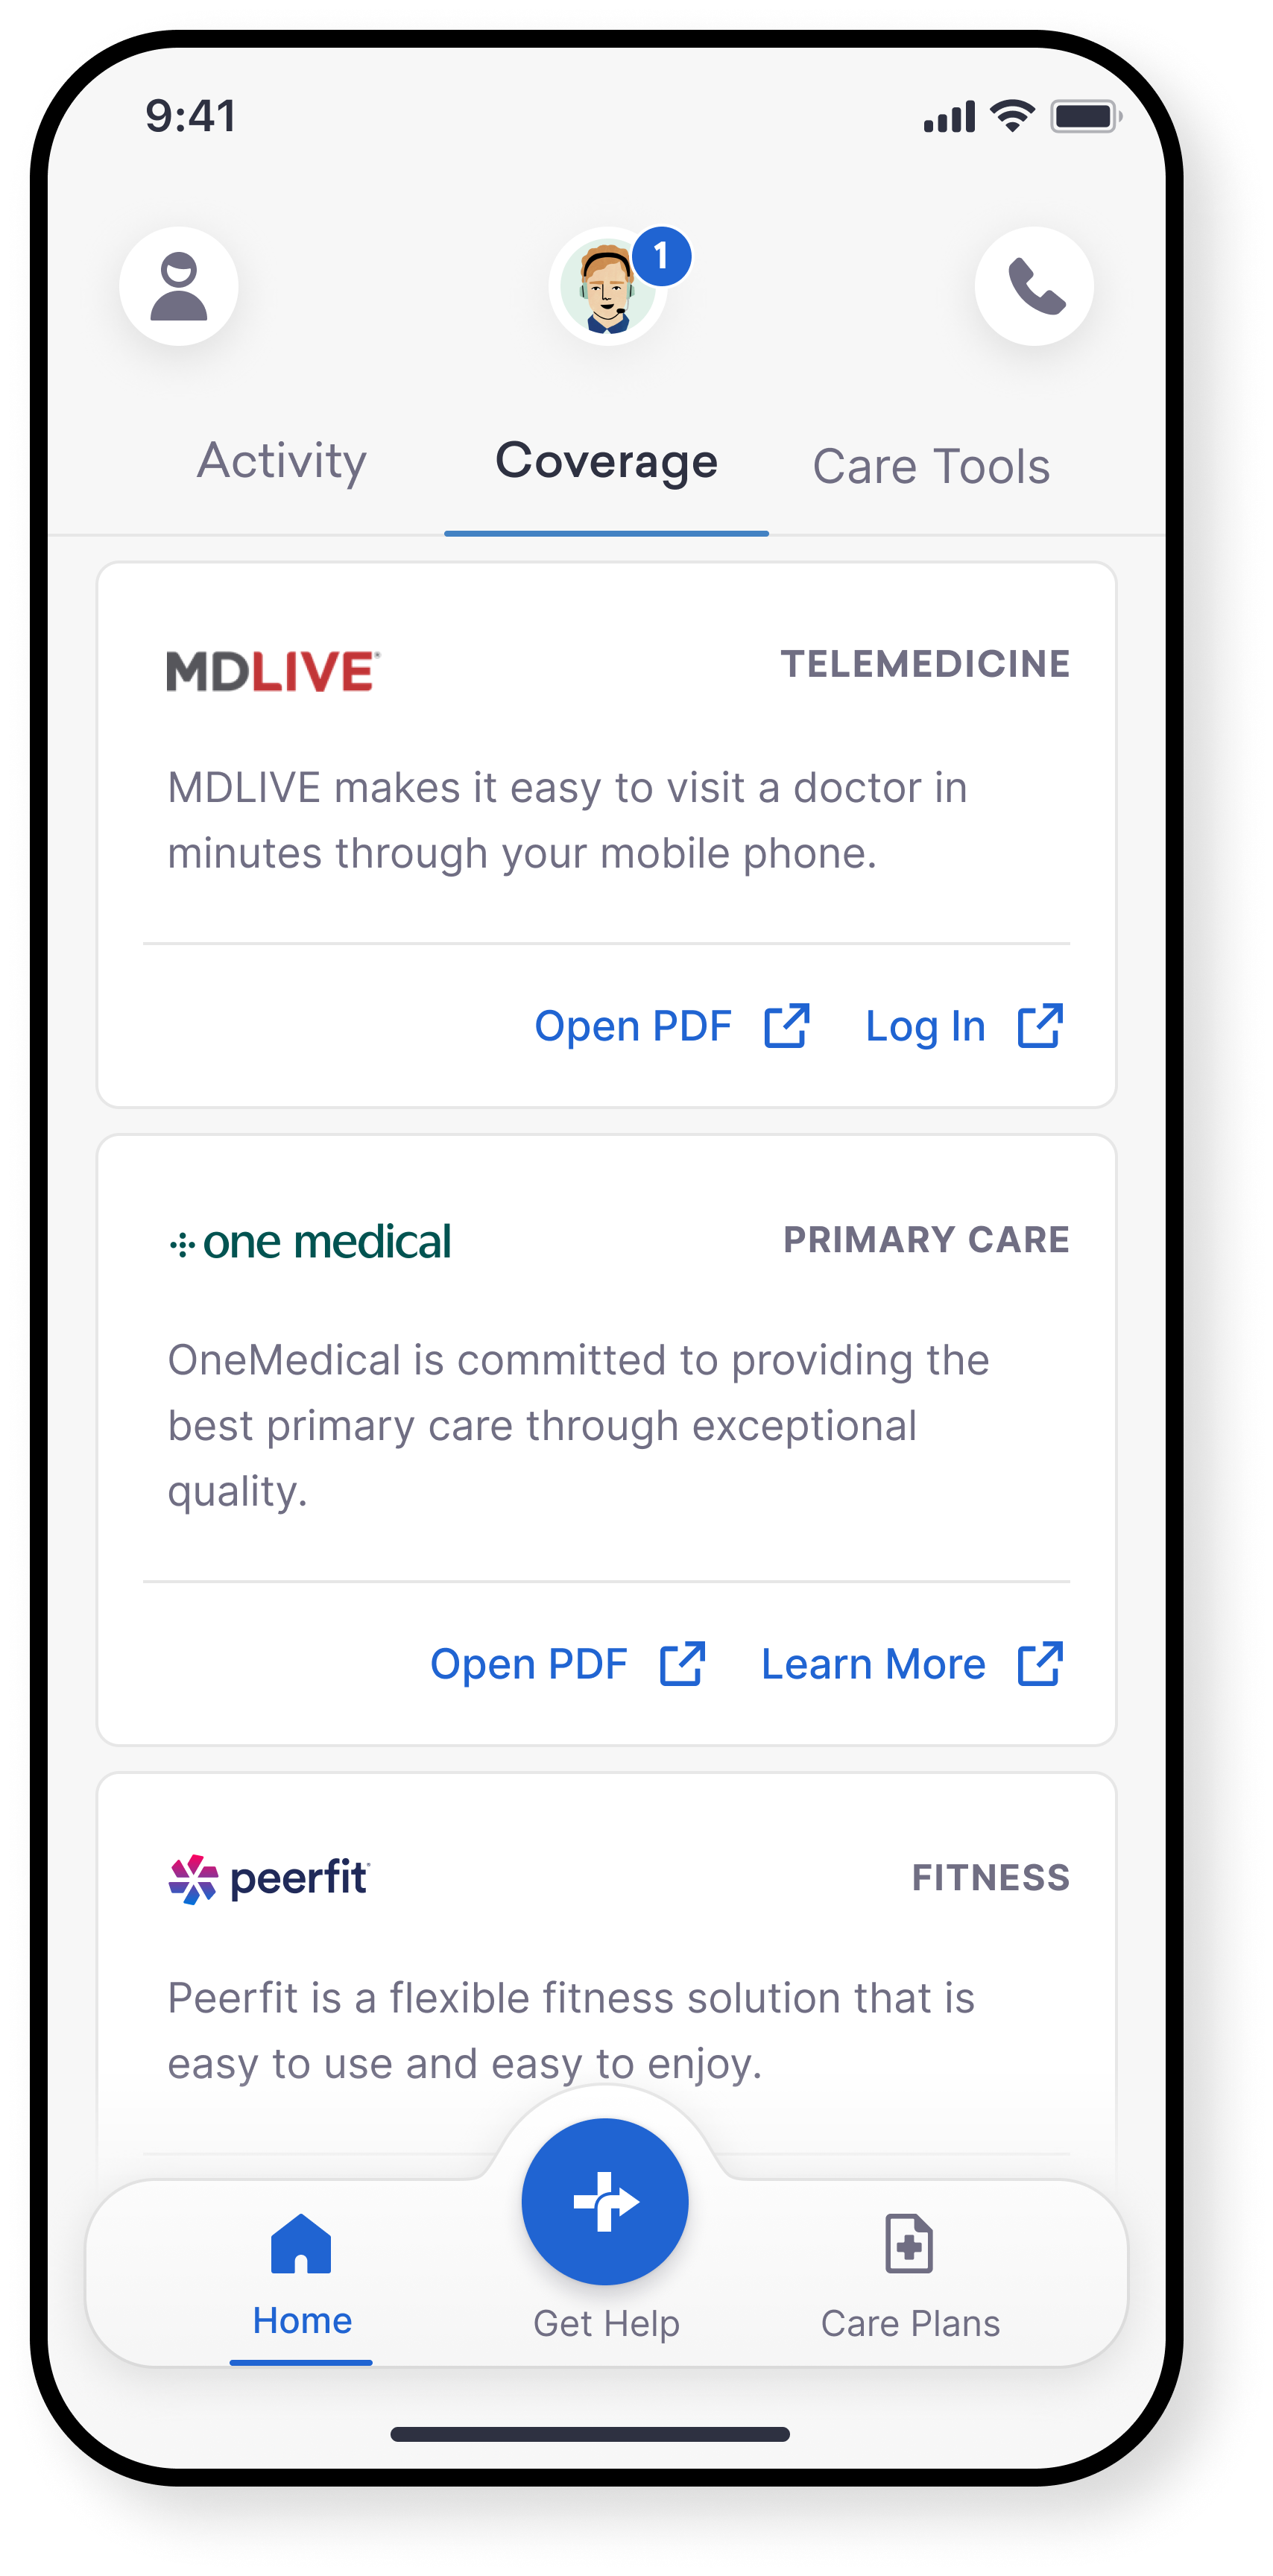 App preview image showing Care Plans screen